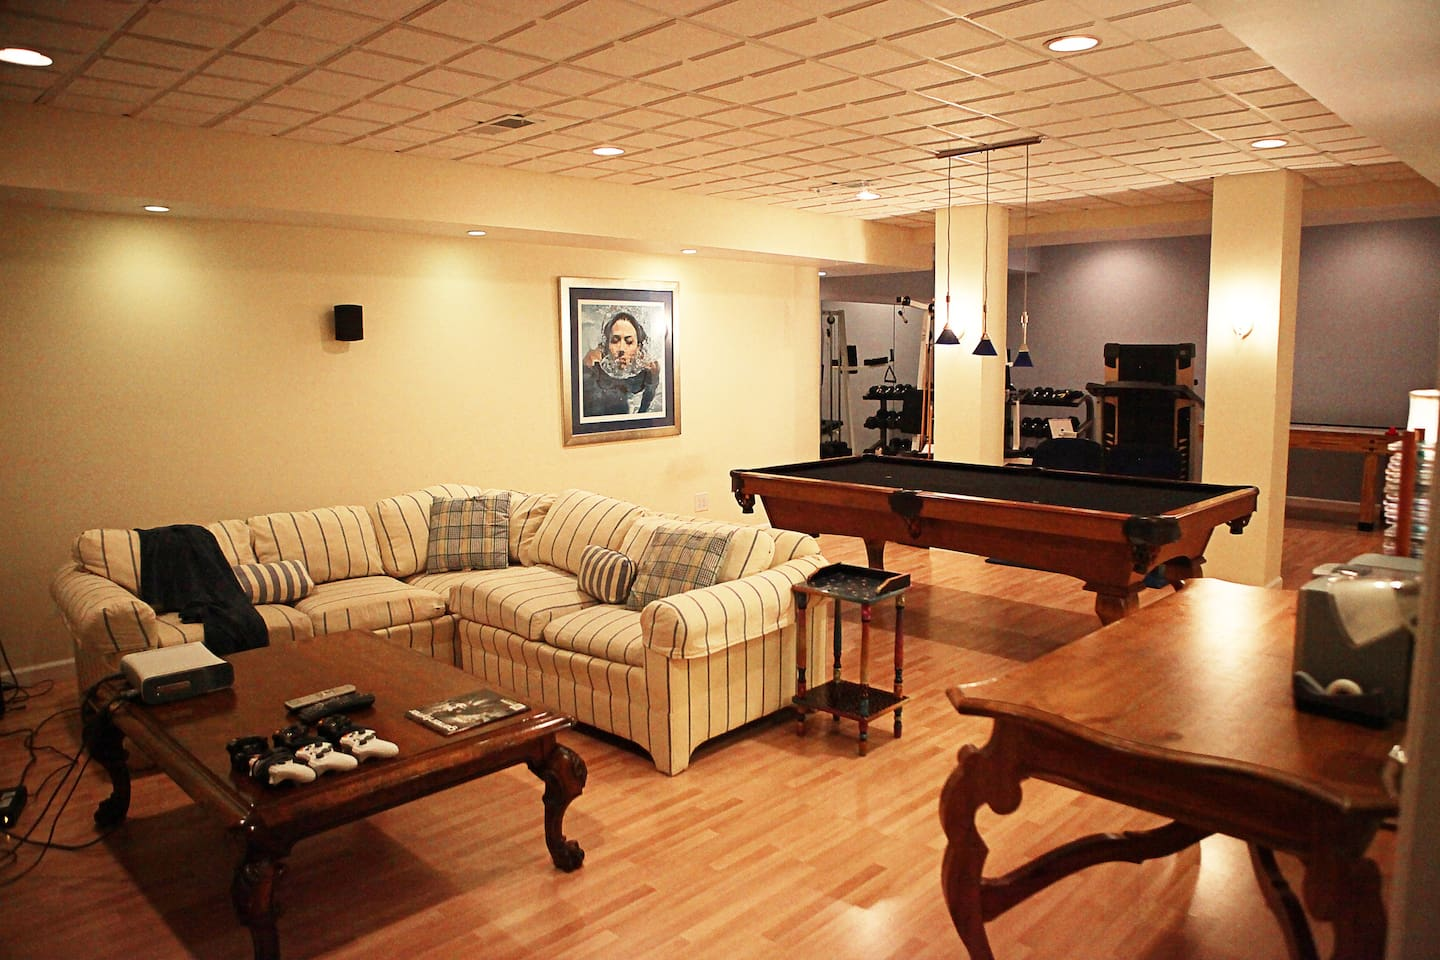 Stay in comfort and relax by watching television, playing pool, or working out